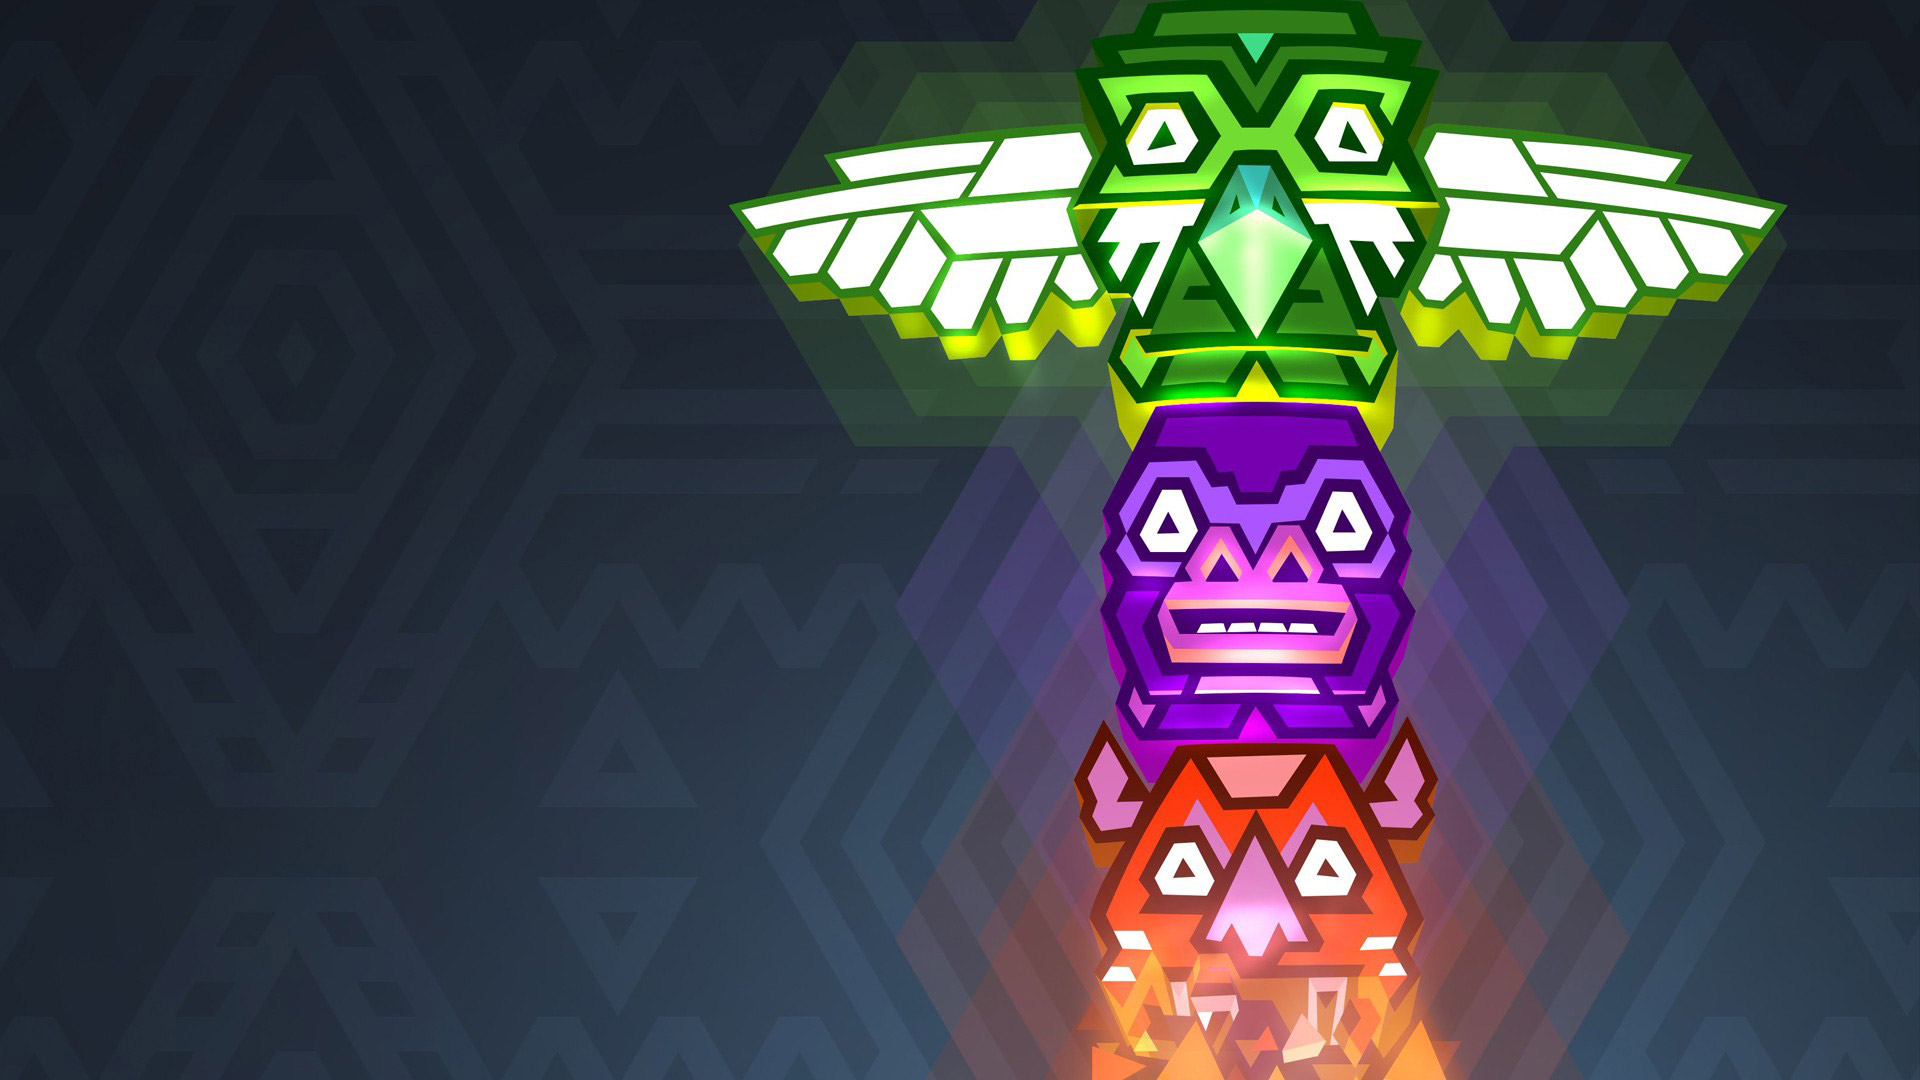 Kalimba Wallpaper in 1920x1080